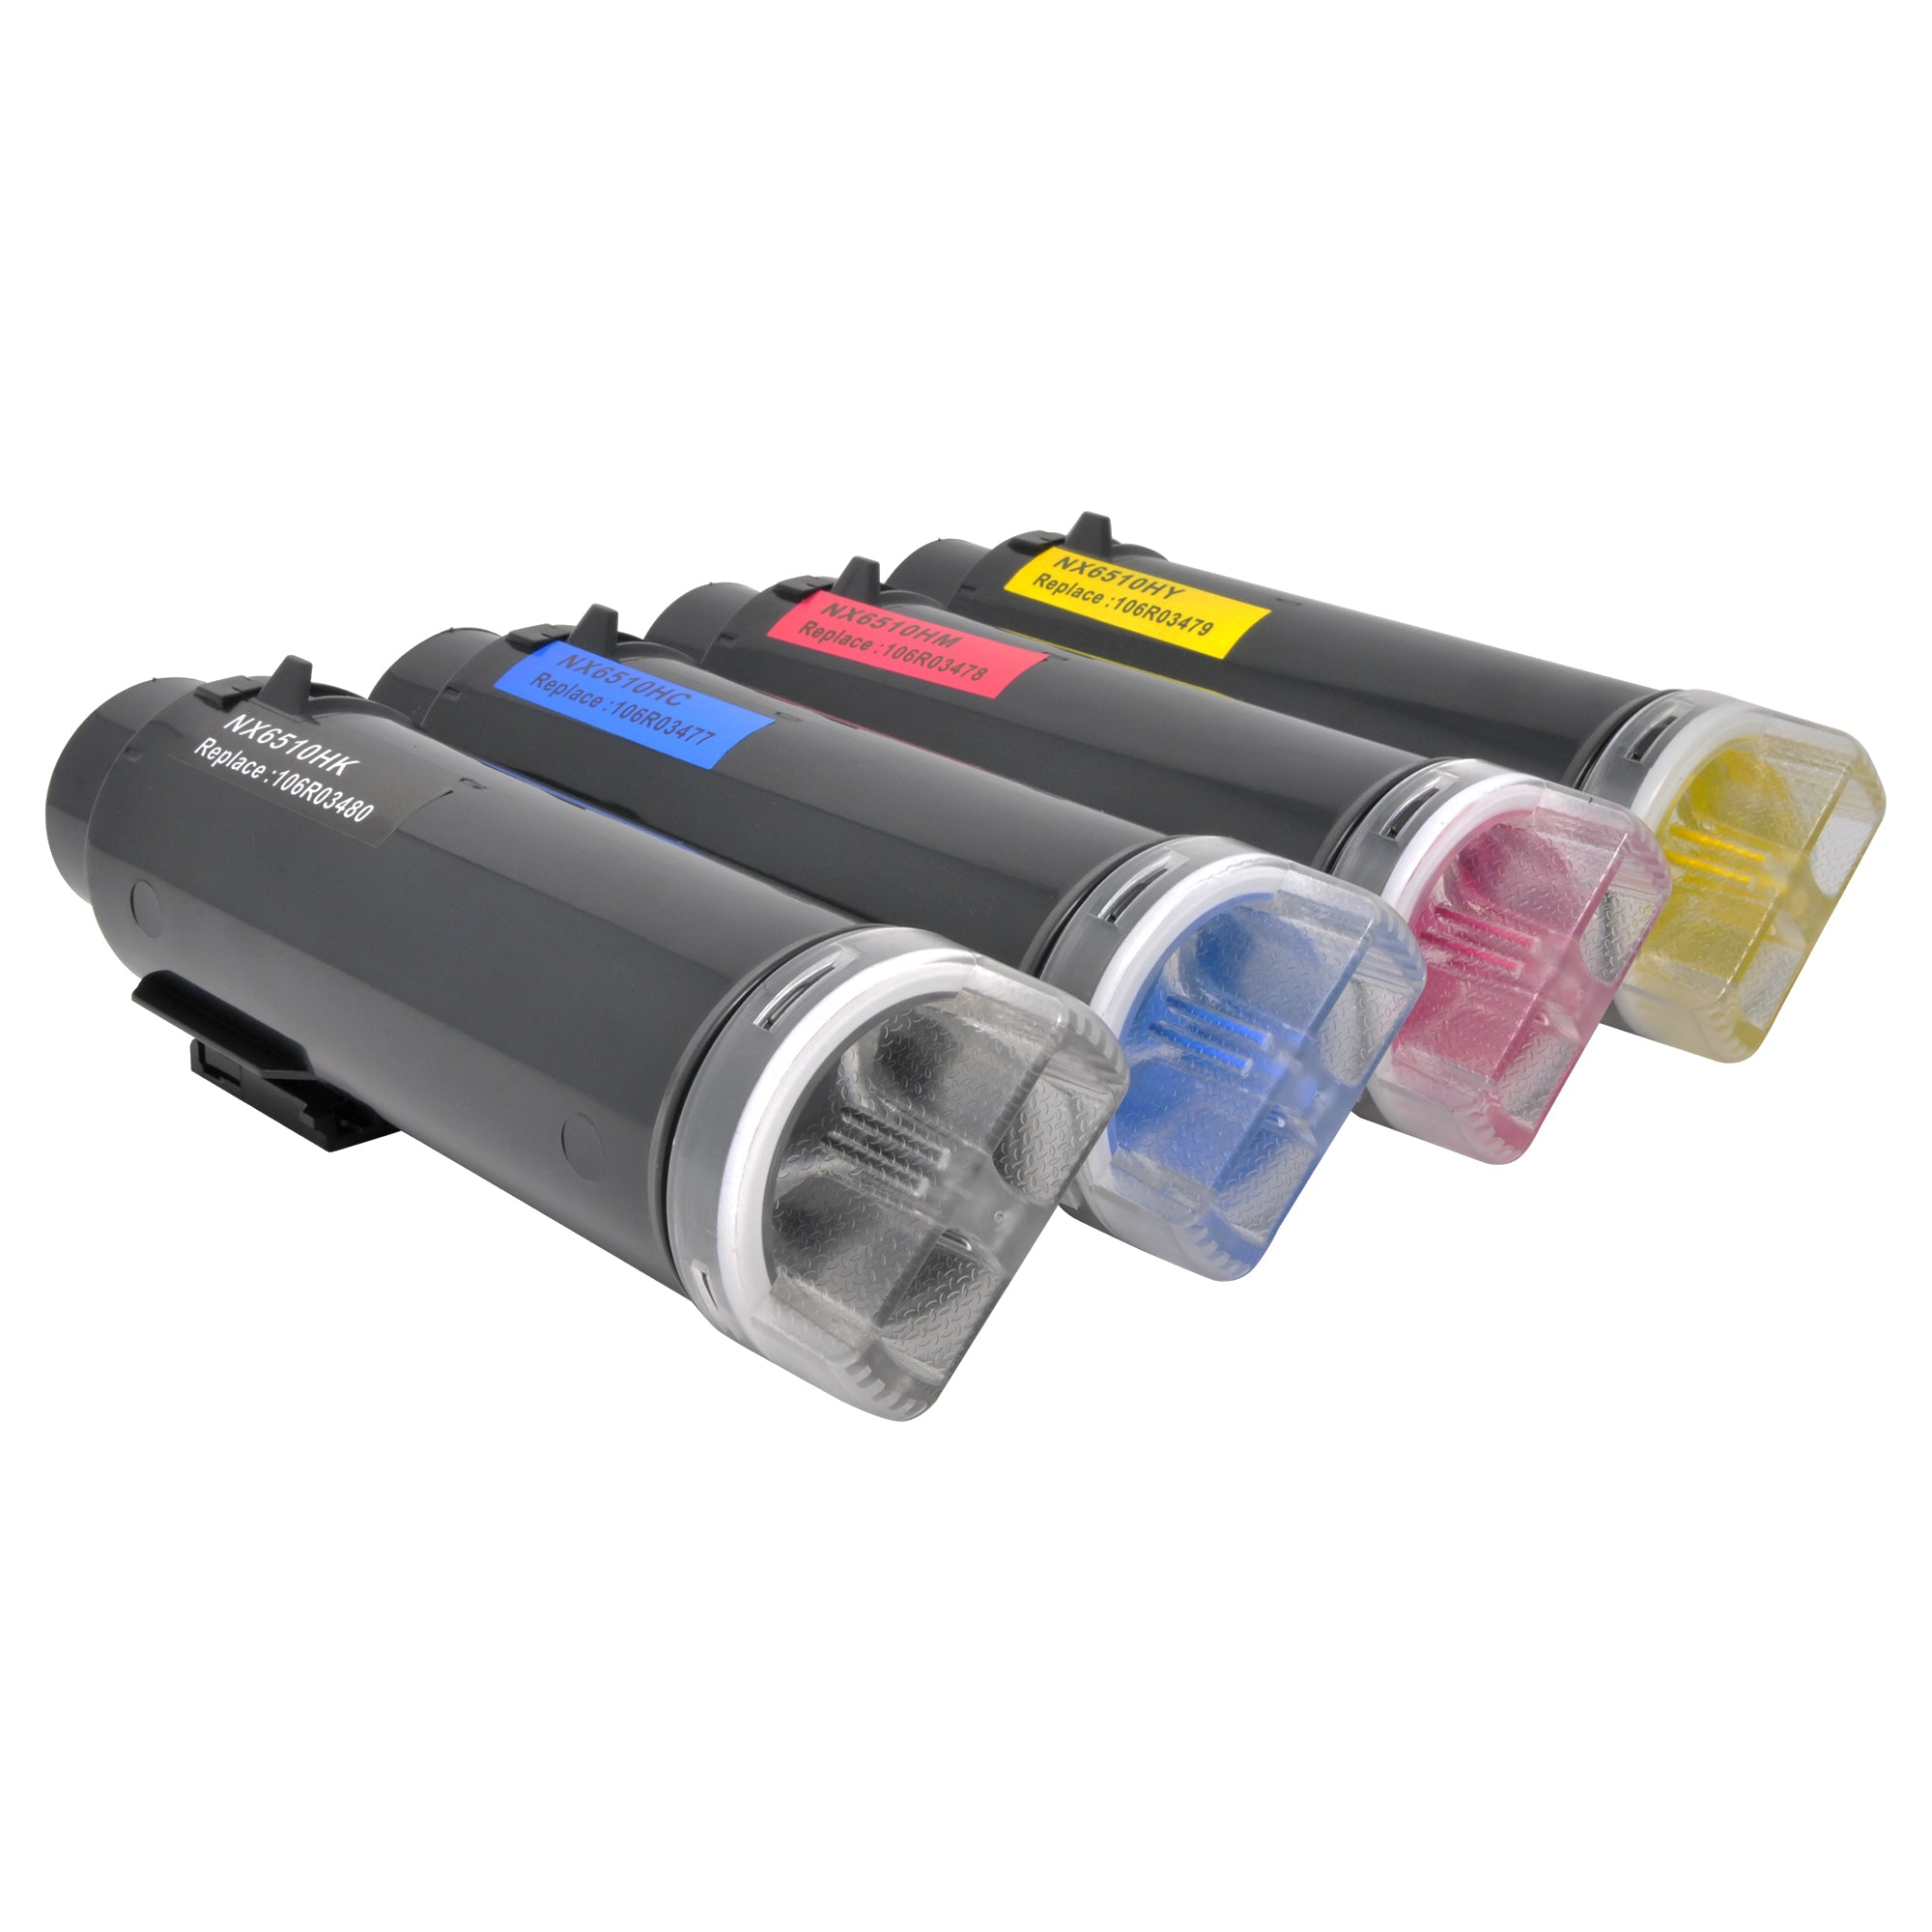 Arthur Imaging Compatible Toner Cartridge Replacement for Xerox Phaser 6510 or WorkCentre 6515 Set (1 Black, Cyan, Magenta, Yellow, 4-Pack)